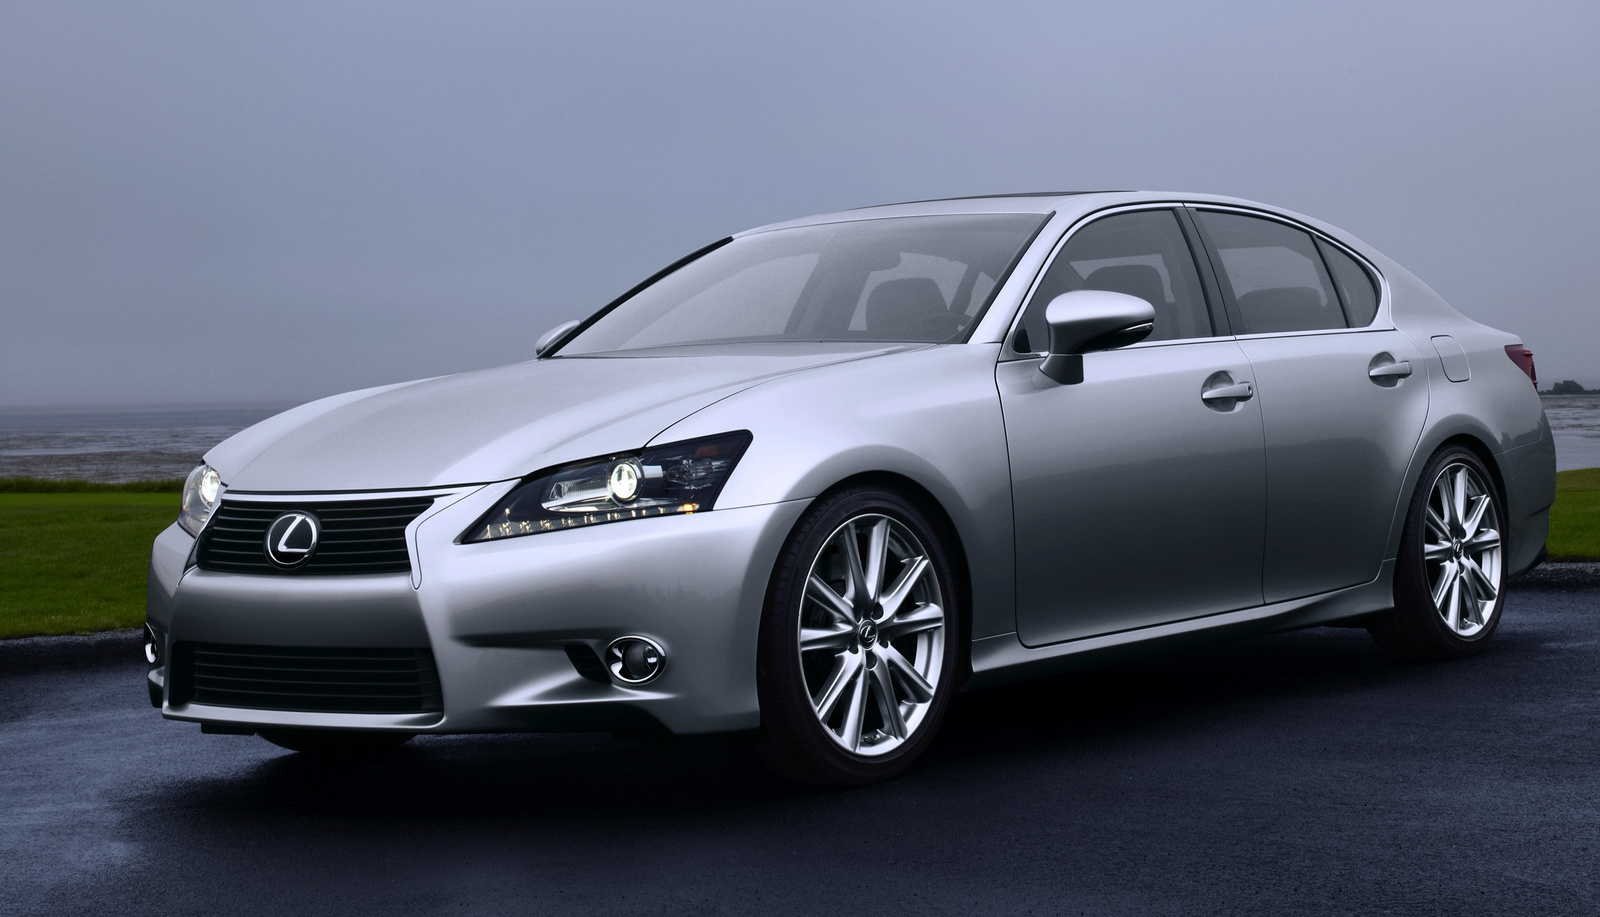 2014 lexus gs 350 overview cargurus. Black Bedroom Furniture Sets. Home Design Ideas